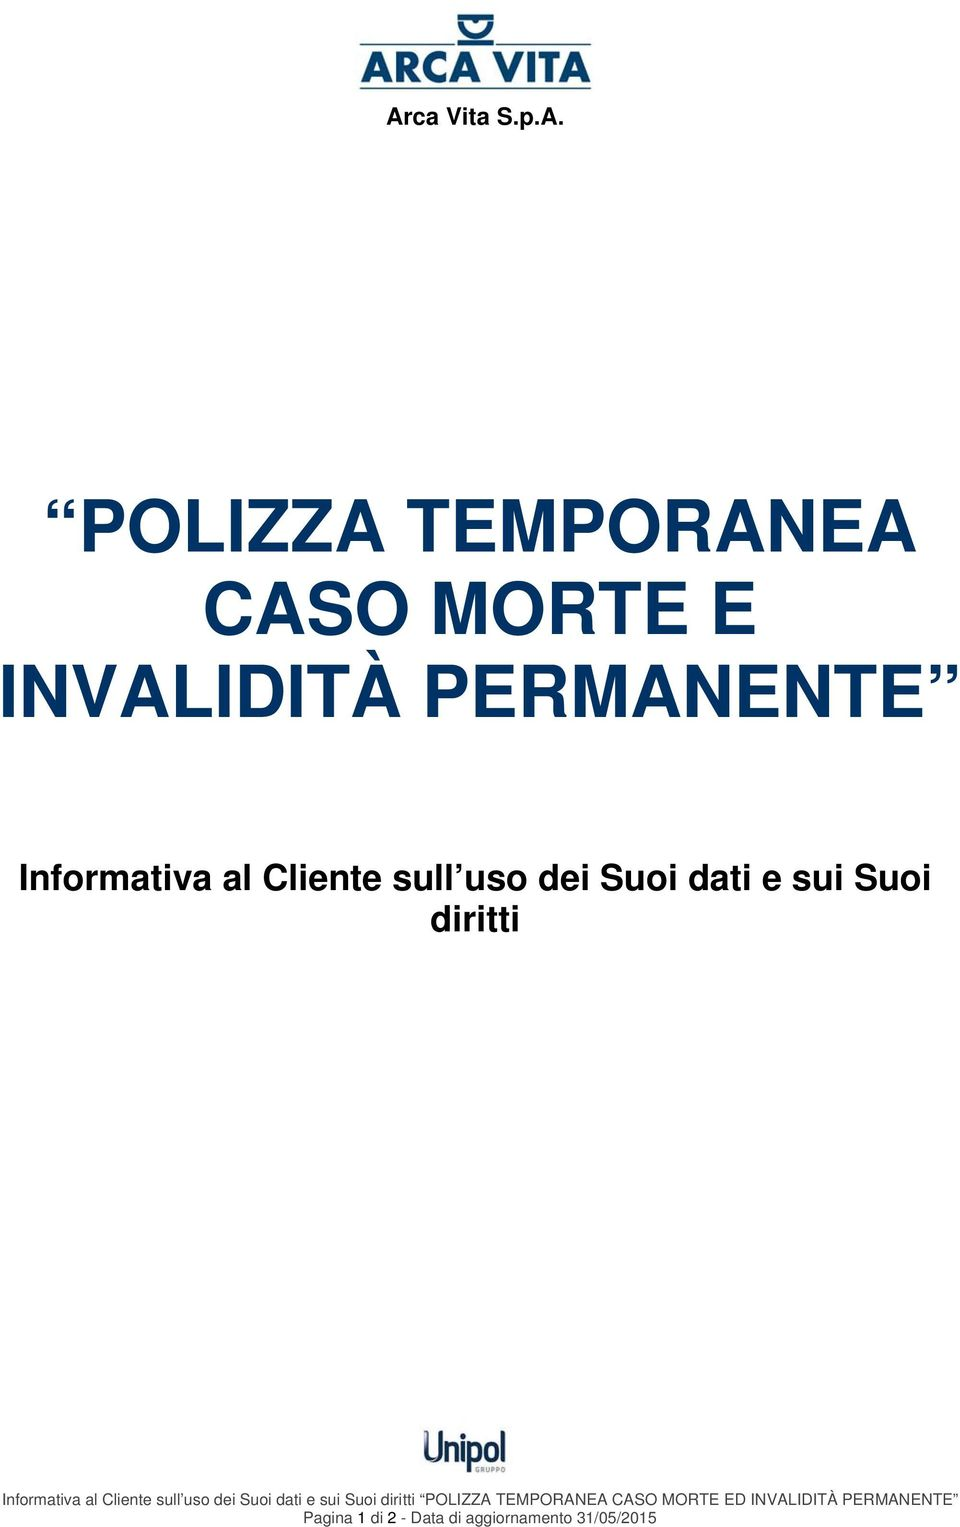 POLIZZA TEMPORANEA CASO MORTE ED INVALIDITÀ PERMANENTE Pagina 1 di 2 - Data